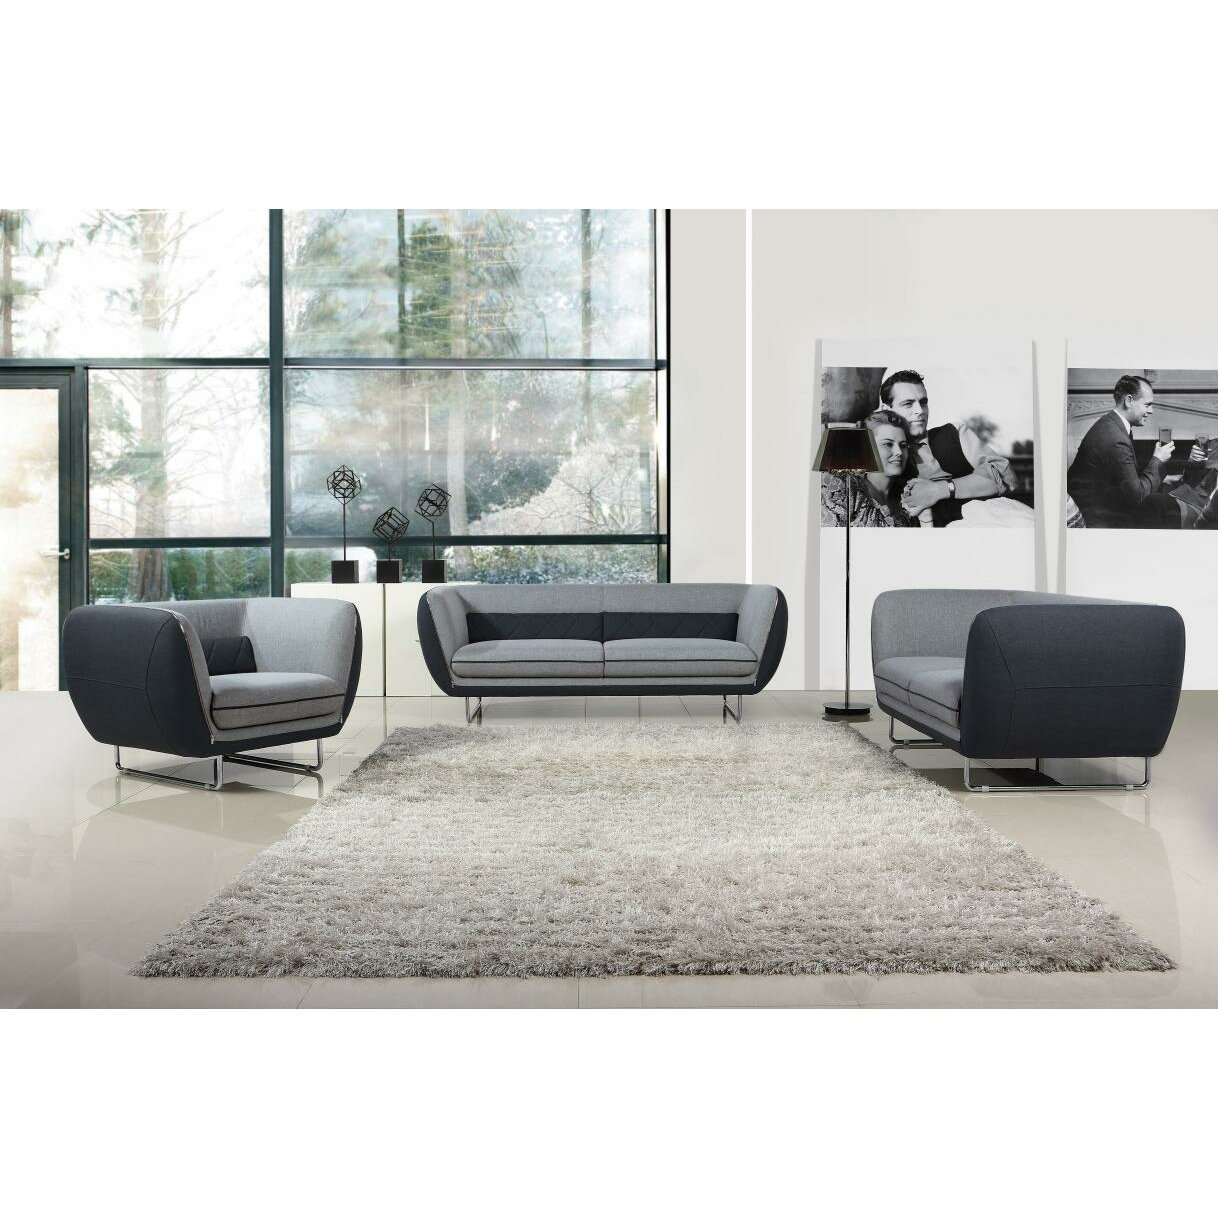 Vig furniture divani casa vietta modern living room set for Modern living room furniture sets